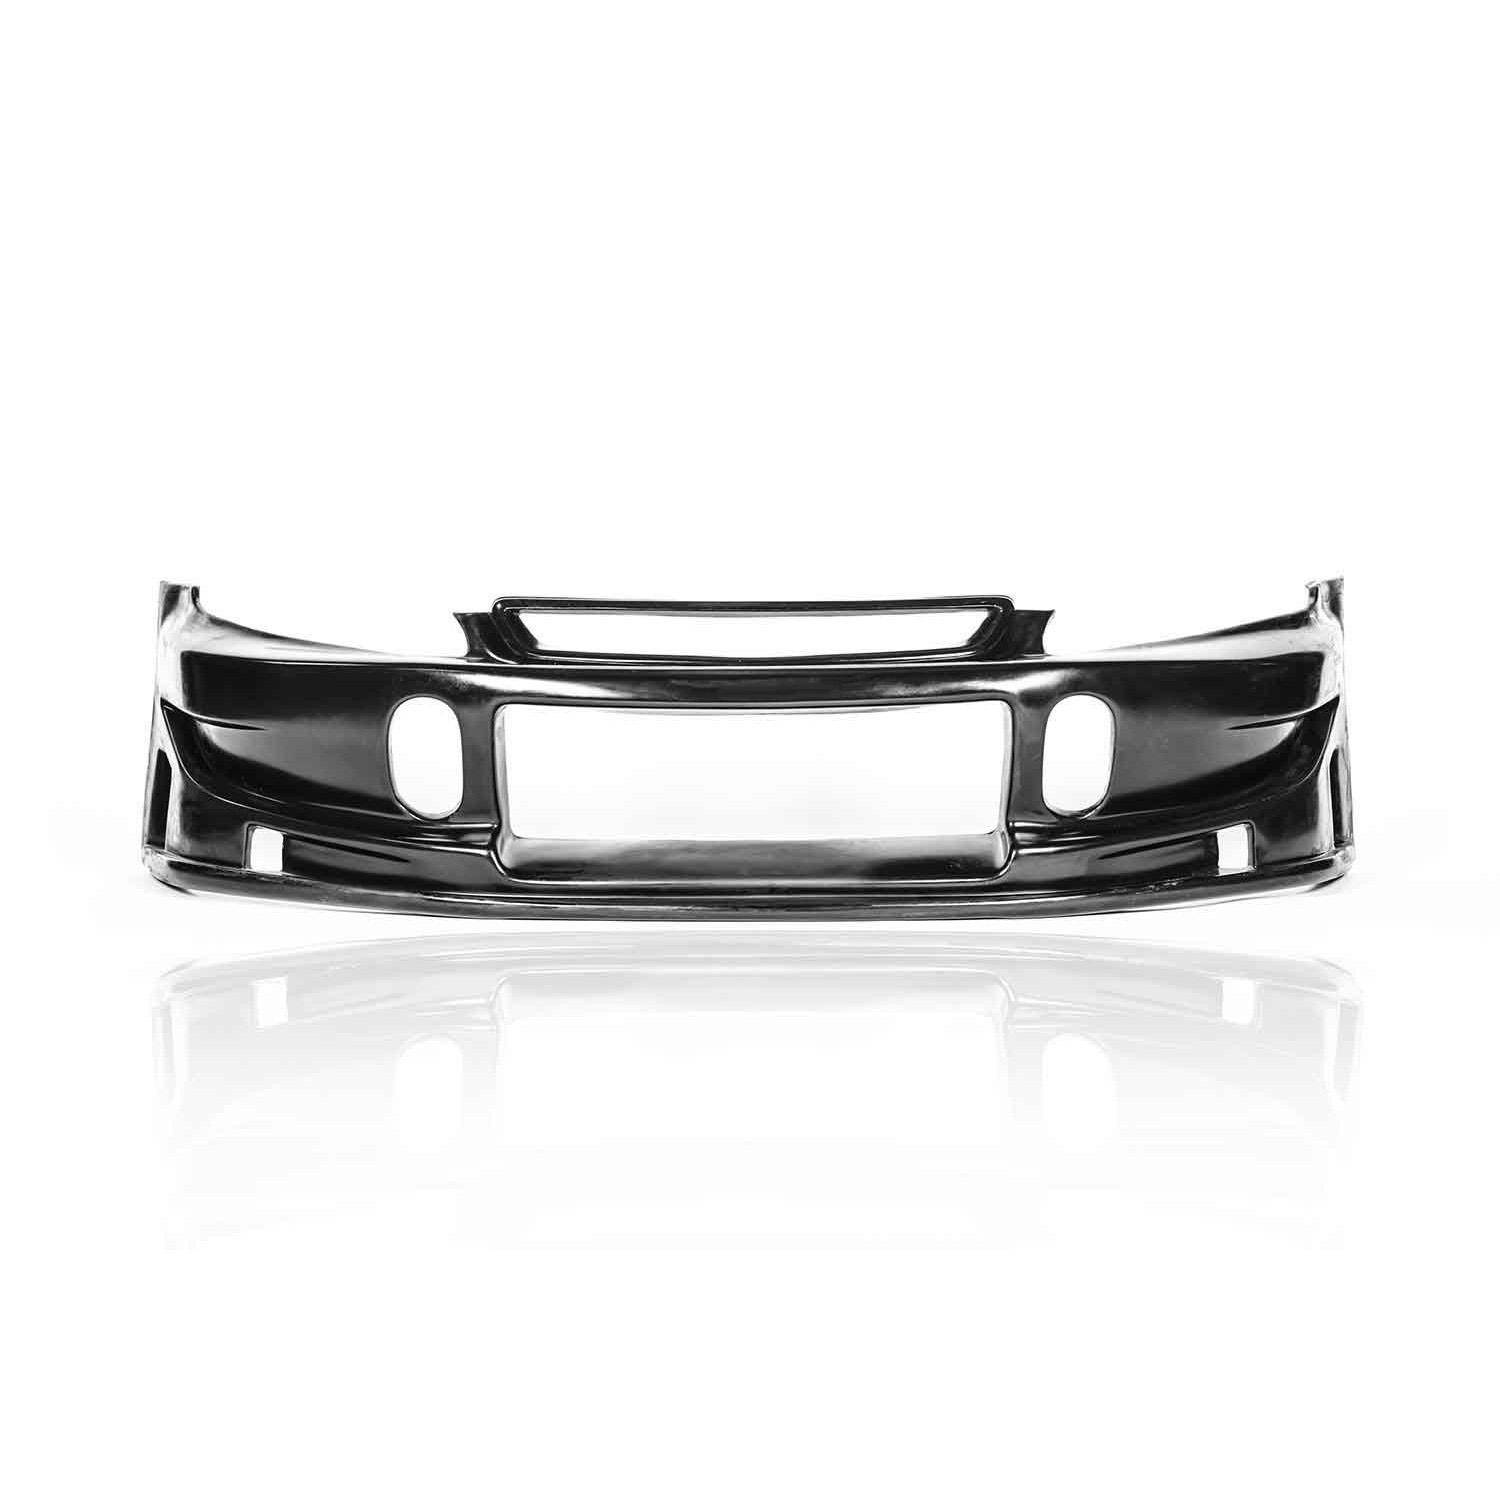 Honda Civic ALL 1999-2000 BC Spec Style 1 Piece Polyurethane Front Bumper